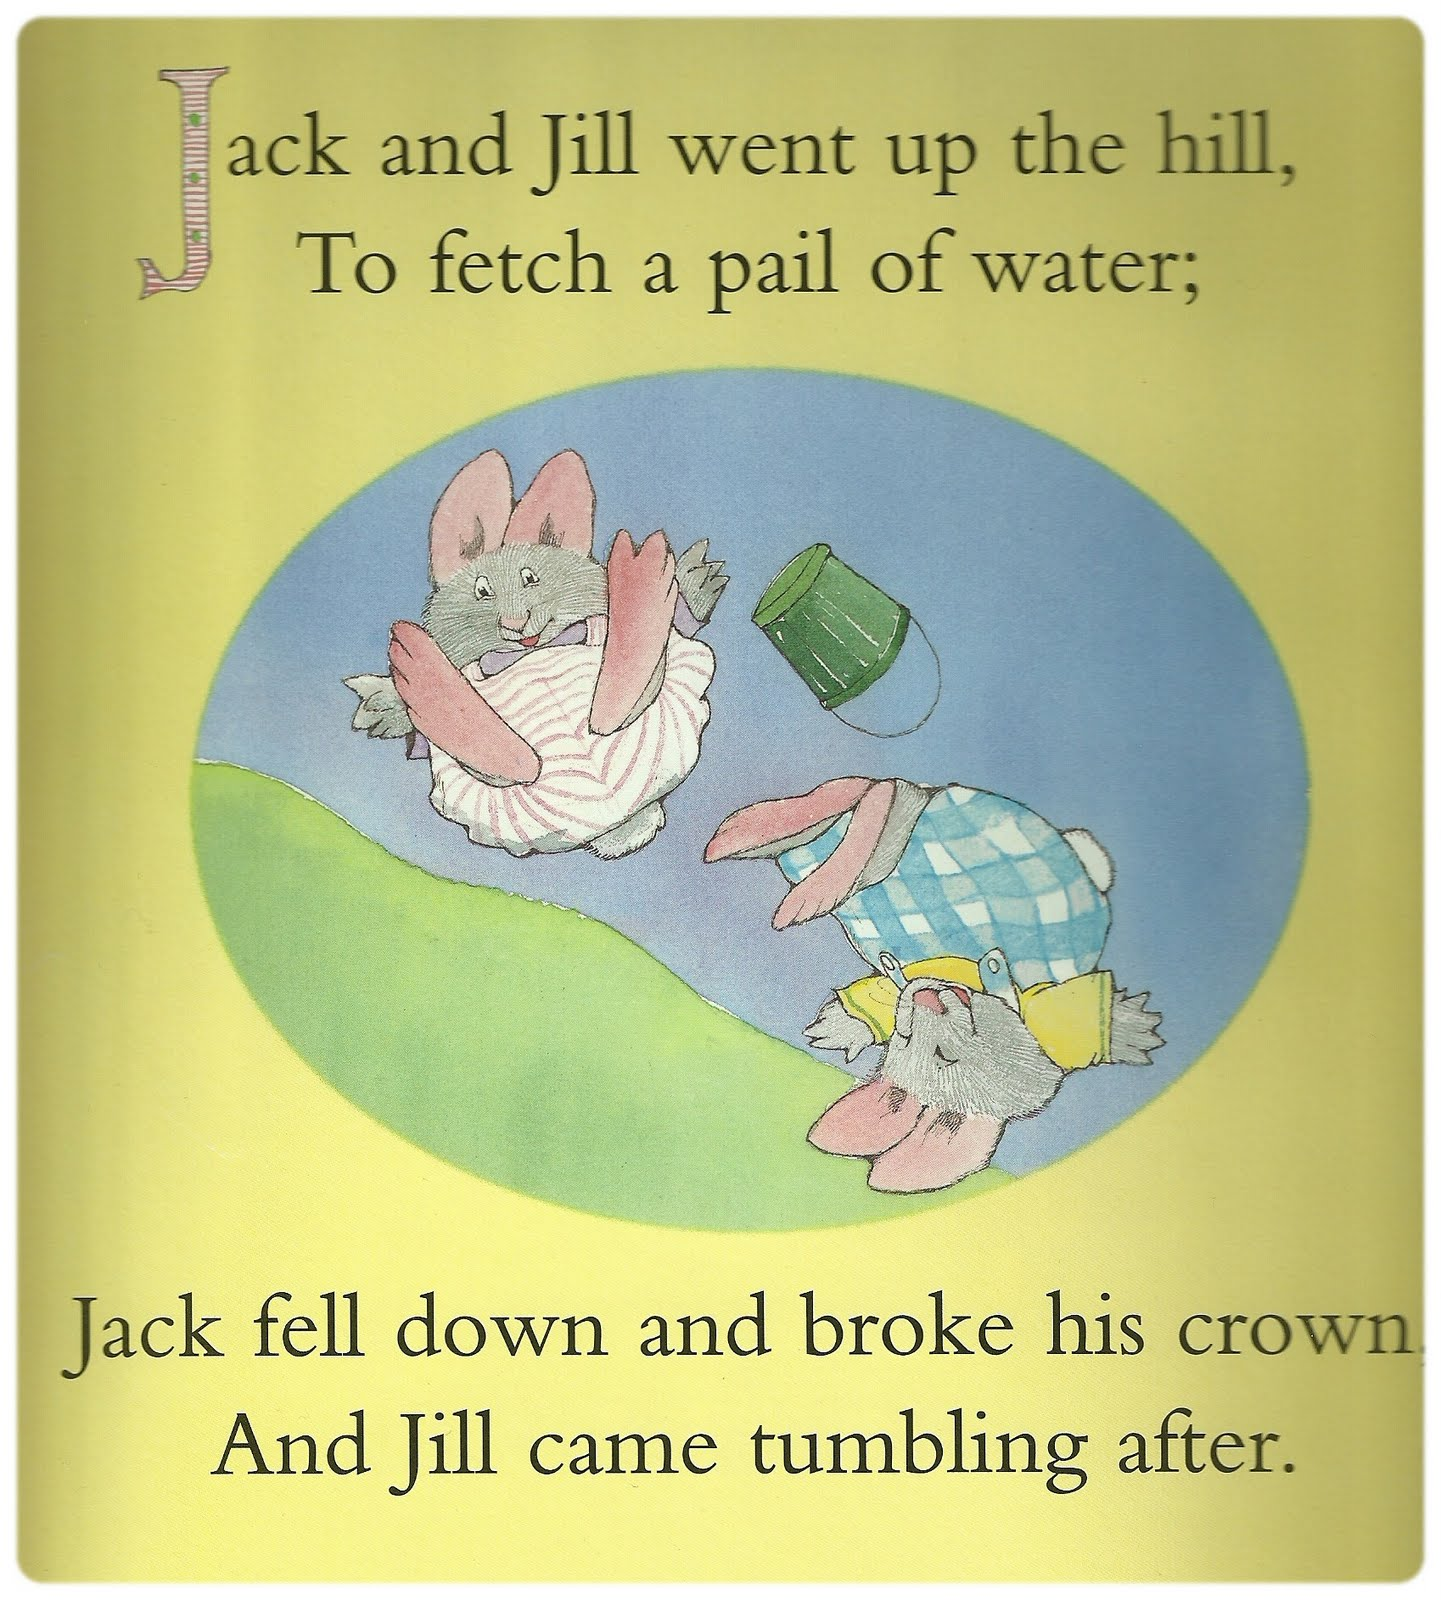 One My Favourite Rhymes And You Might Know From The Young S Advert